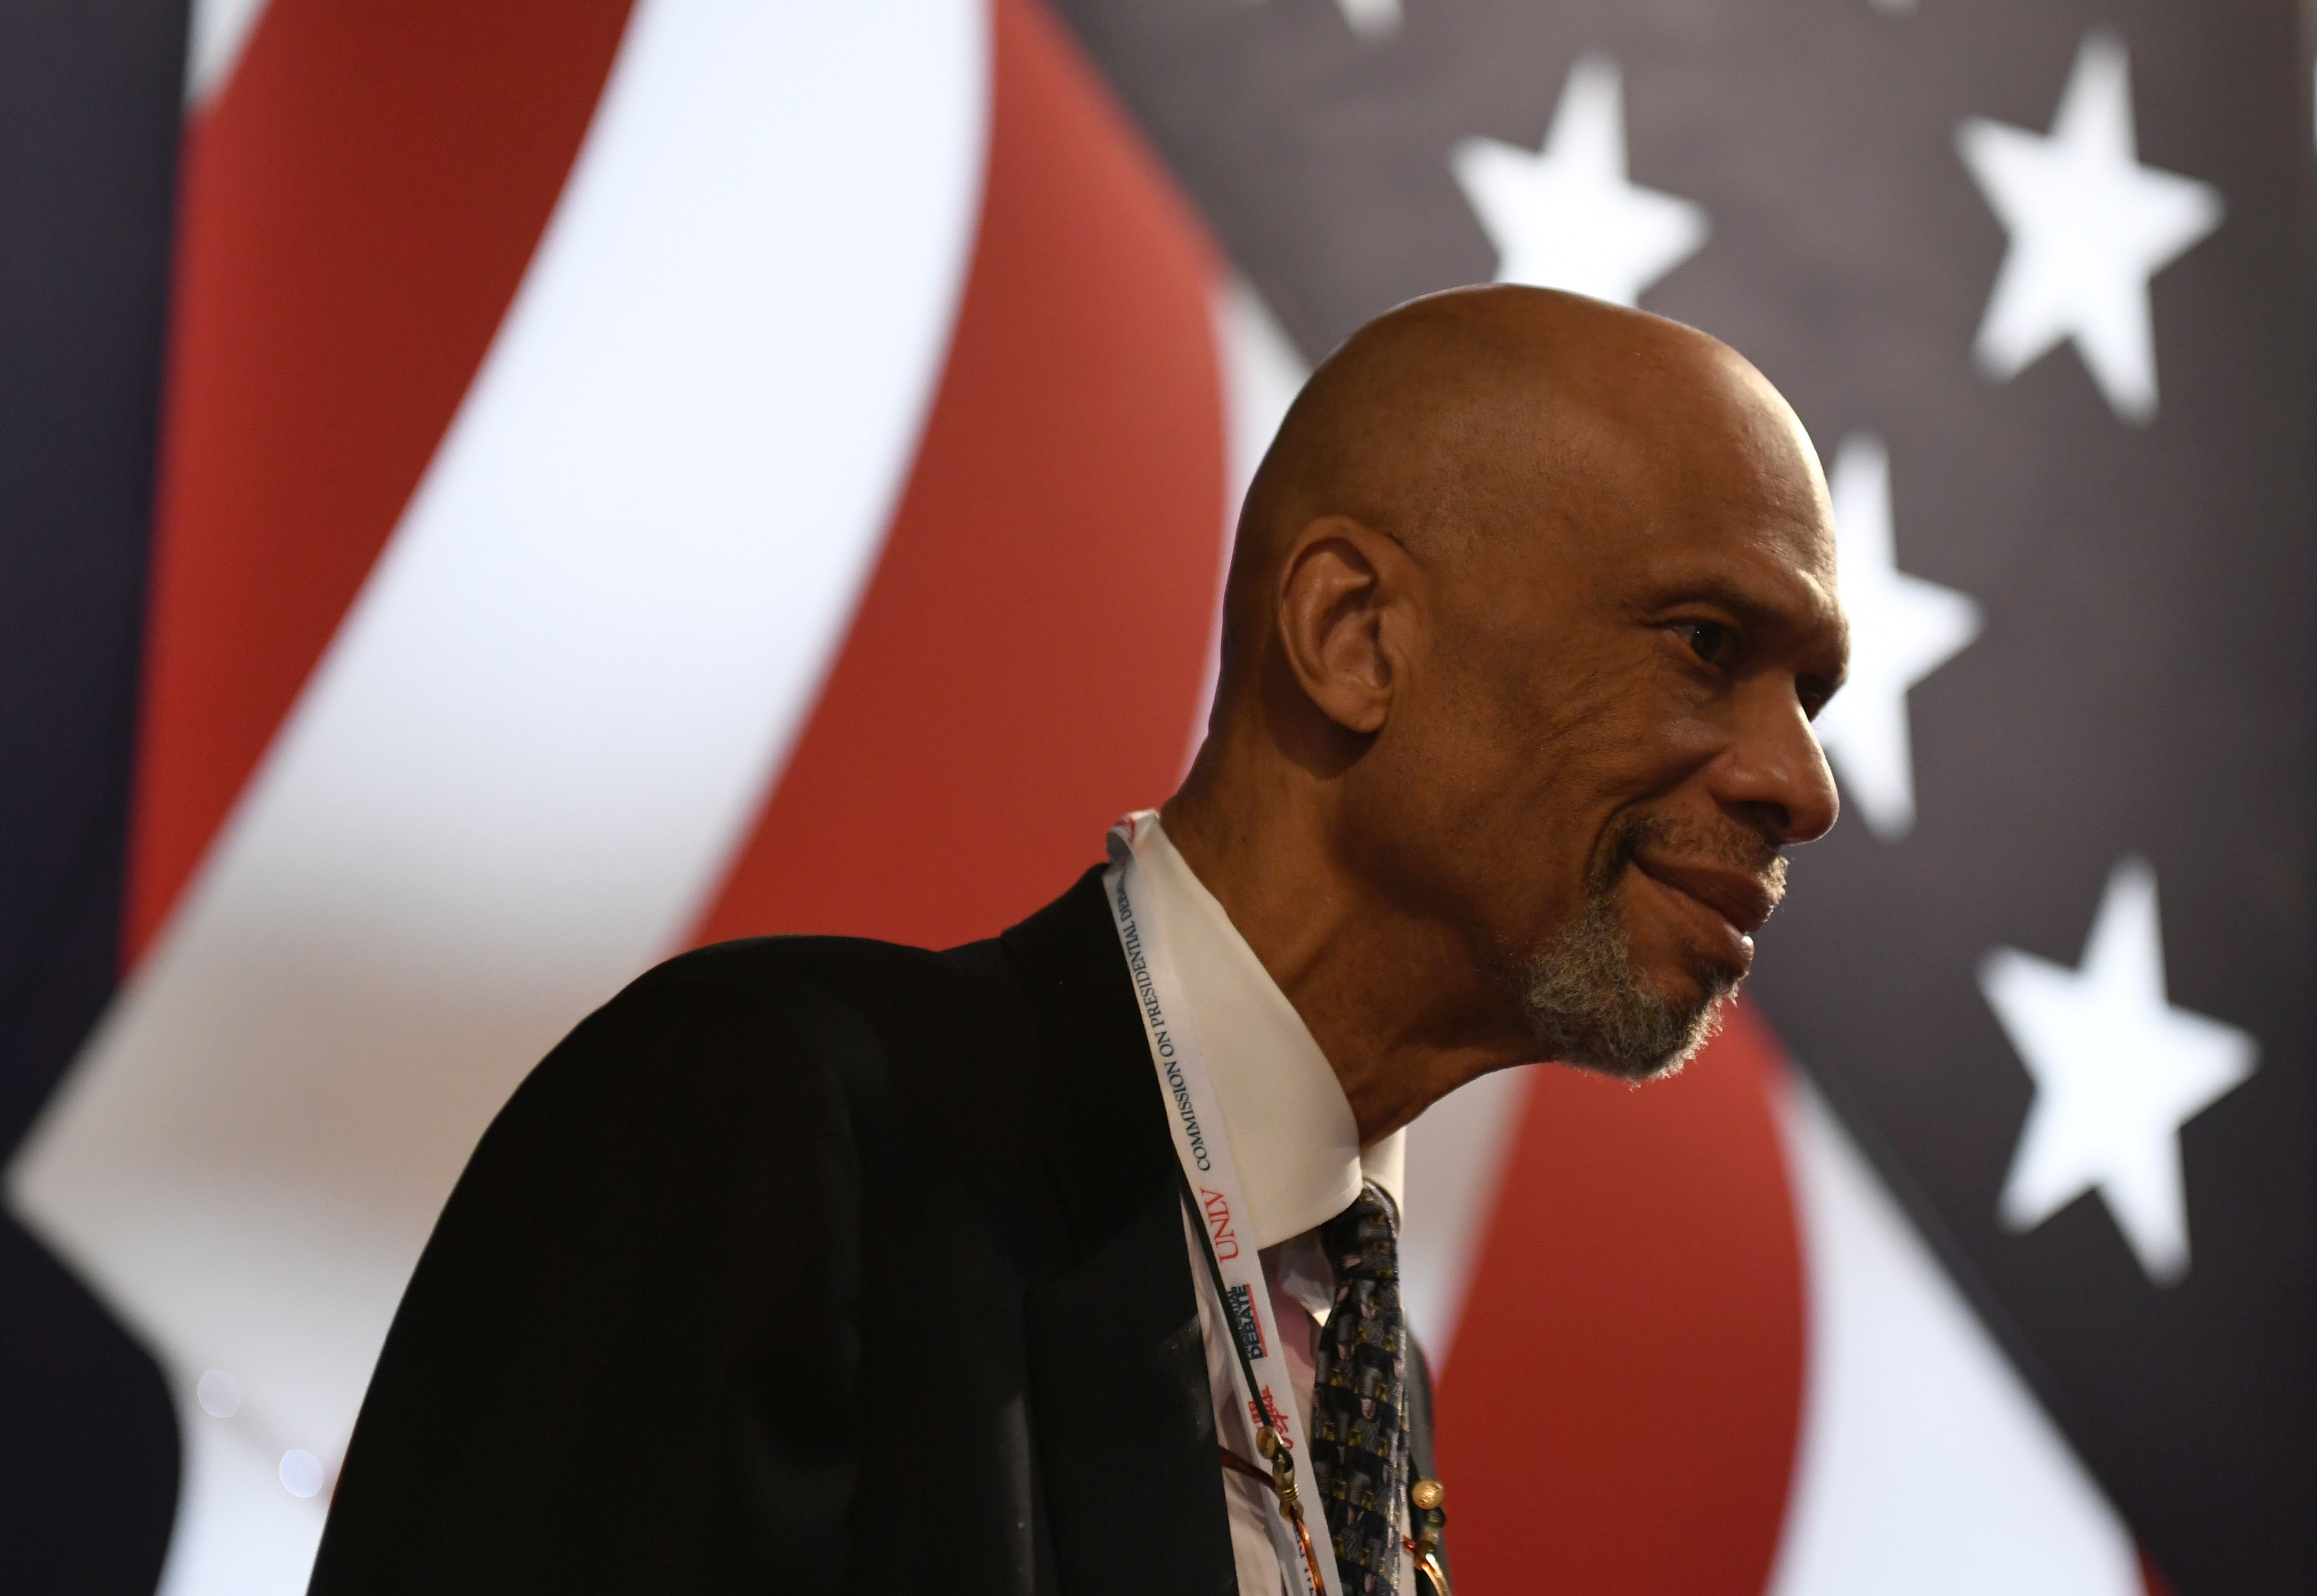 bbdb05f35b1 Kareem Abdul-Jabbar feels a connection with today's athletes - The ...